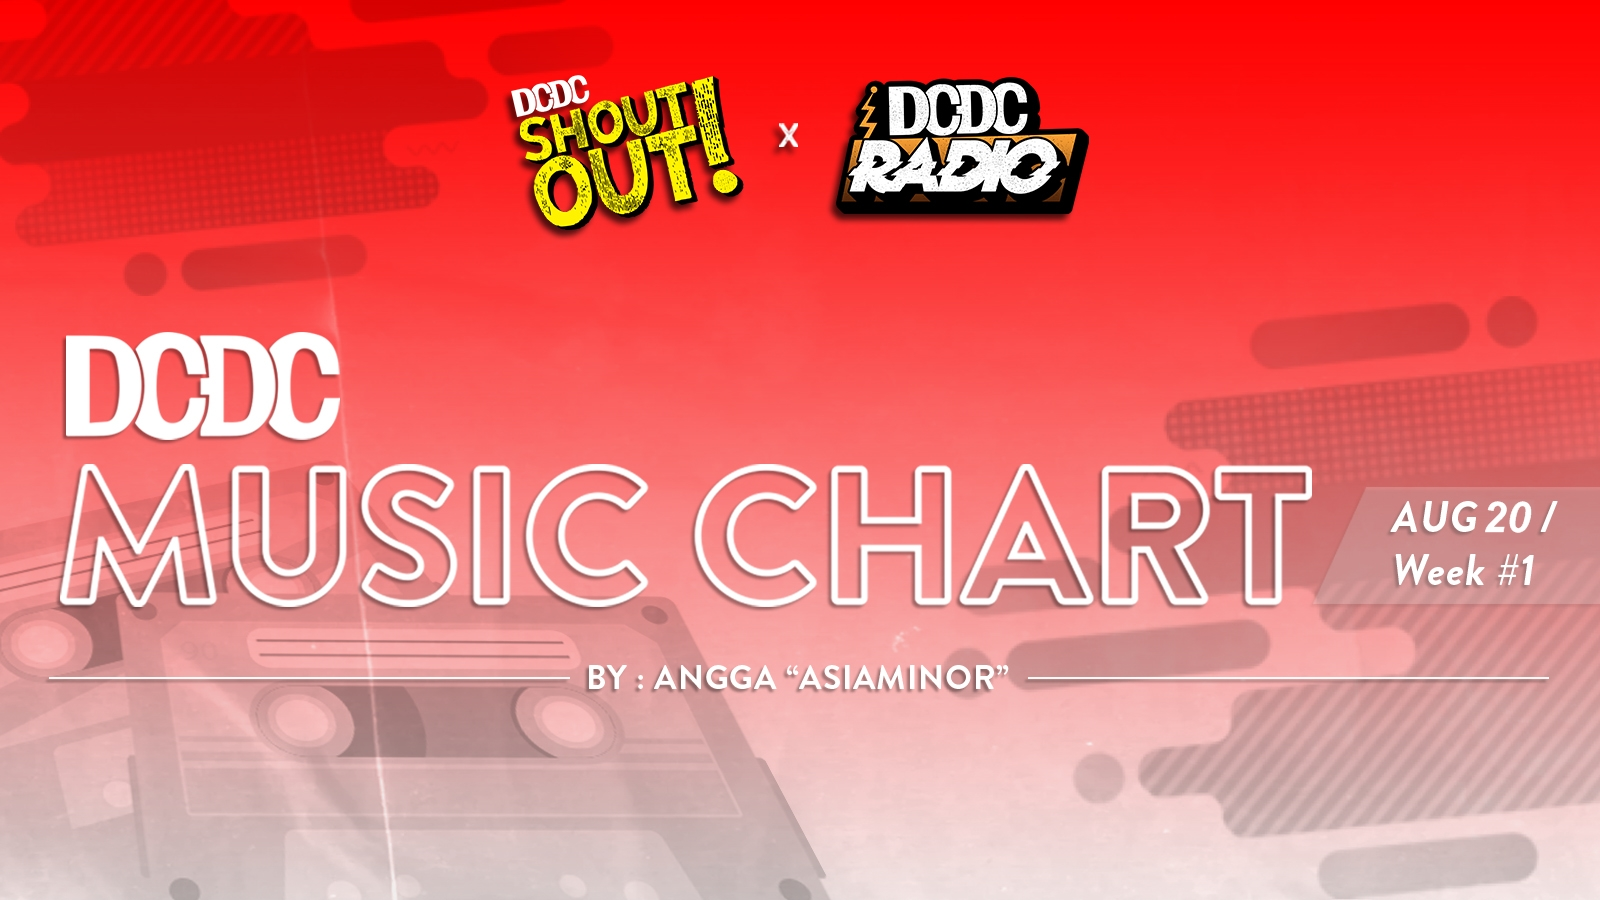 DCDC Music Chart - #1st Week of August 2020